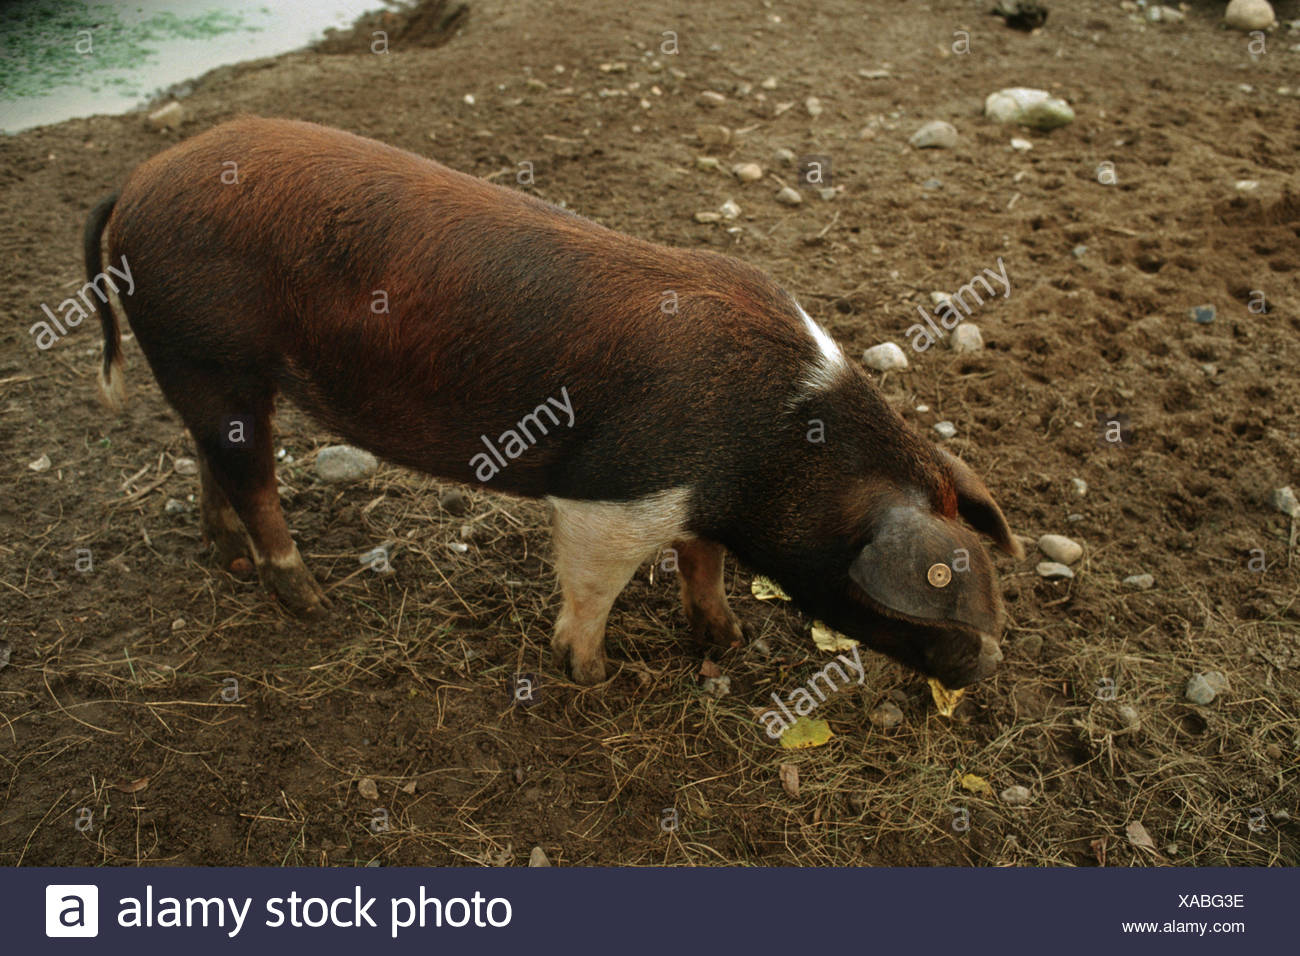 Danish Protest Pig (Sus scrofa f. domestica), looking for food on a soil ground - Stock Image